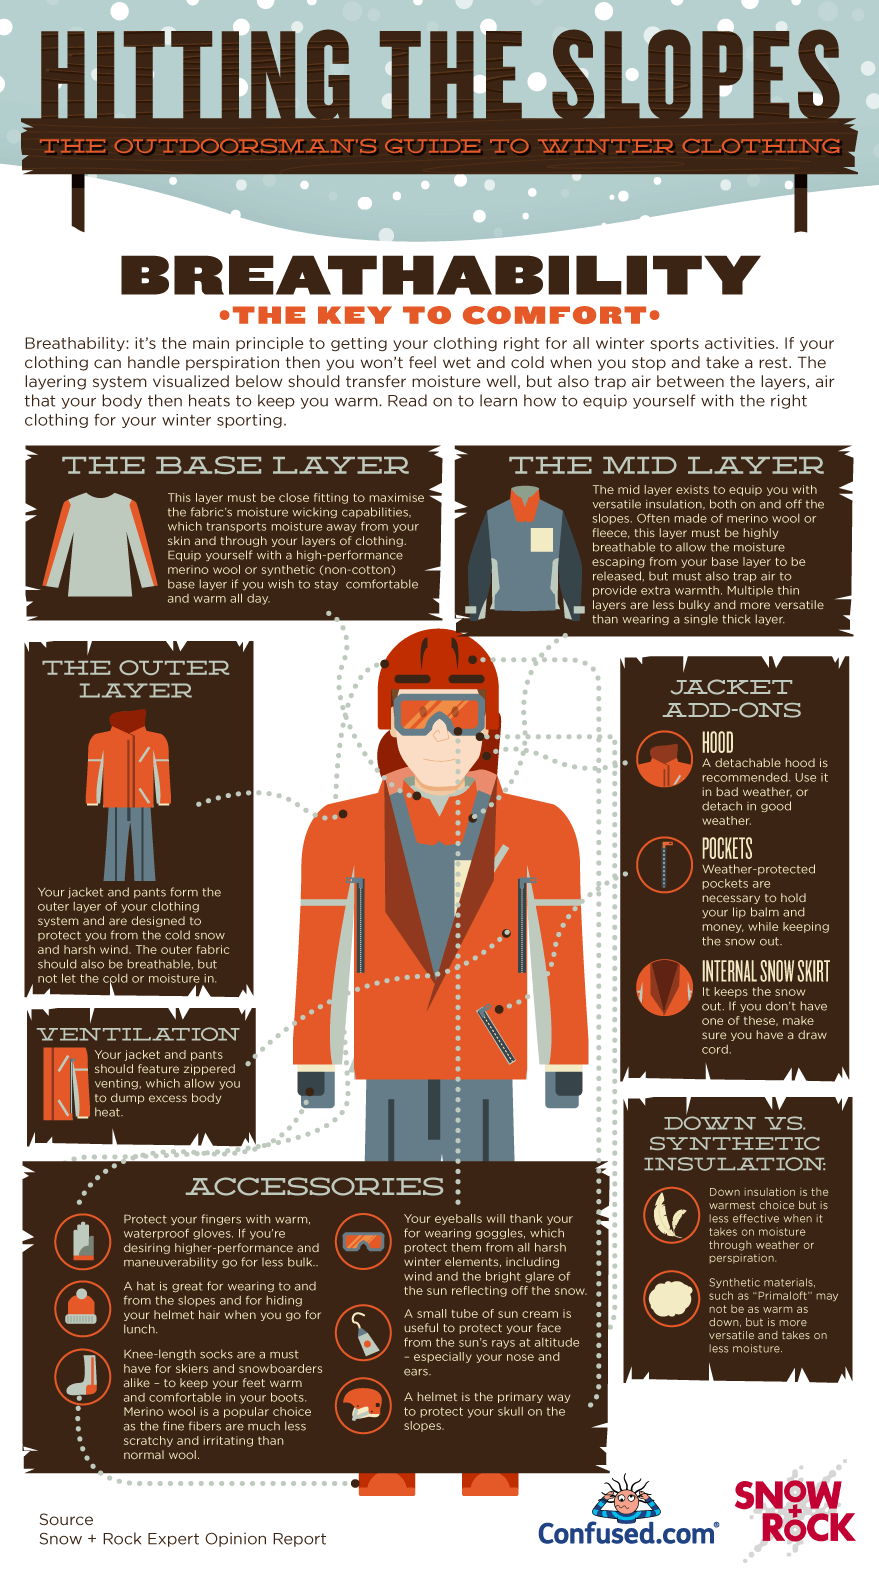 winter-sports-clothing-guide-tips-tipsographic